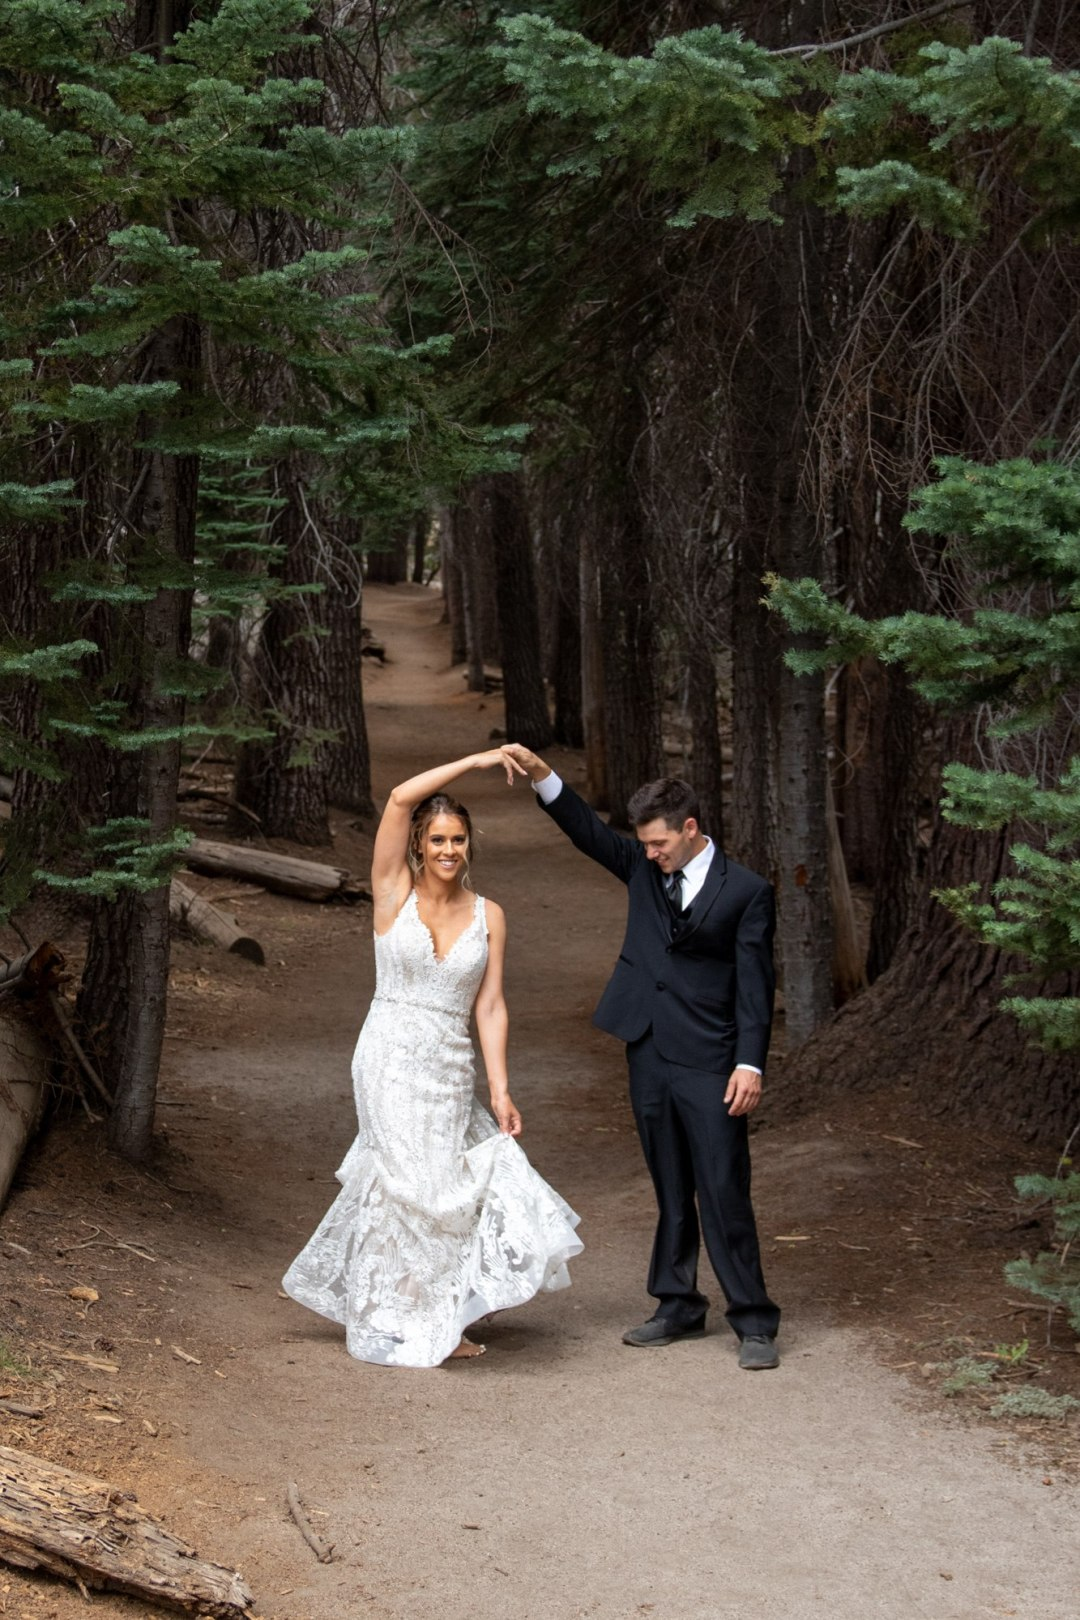 Bride and Groom dancing in the forest on the way to their Taft Point Elopement in Yosemite